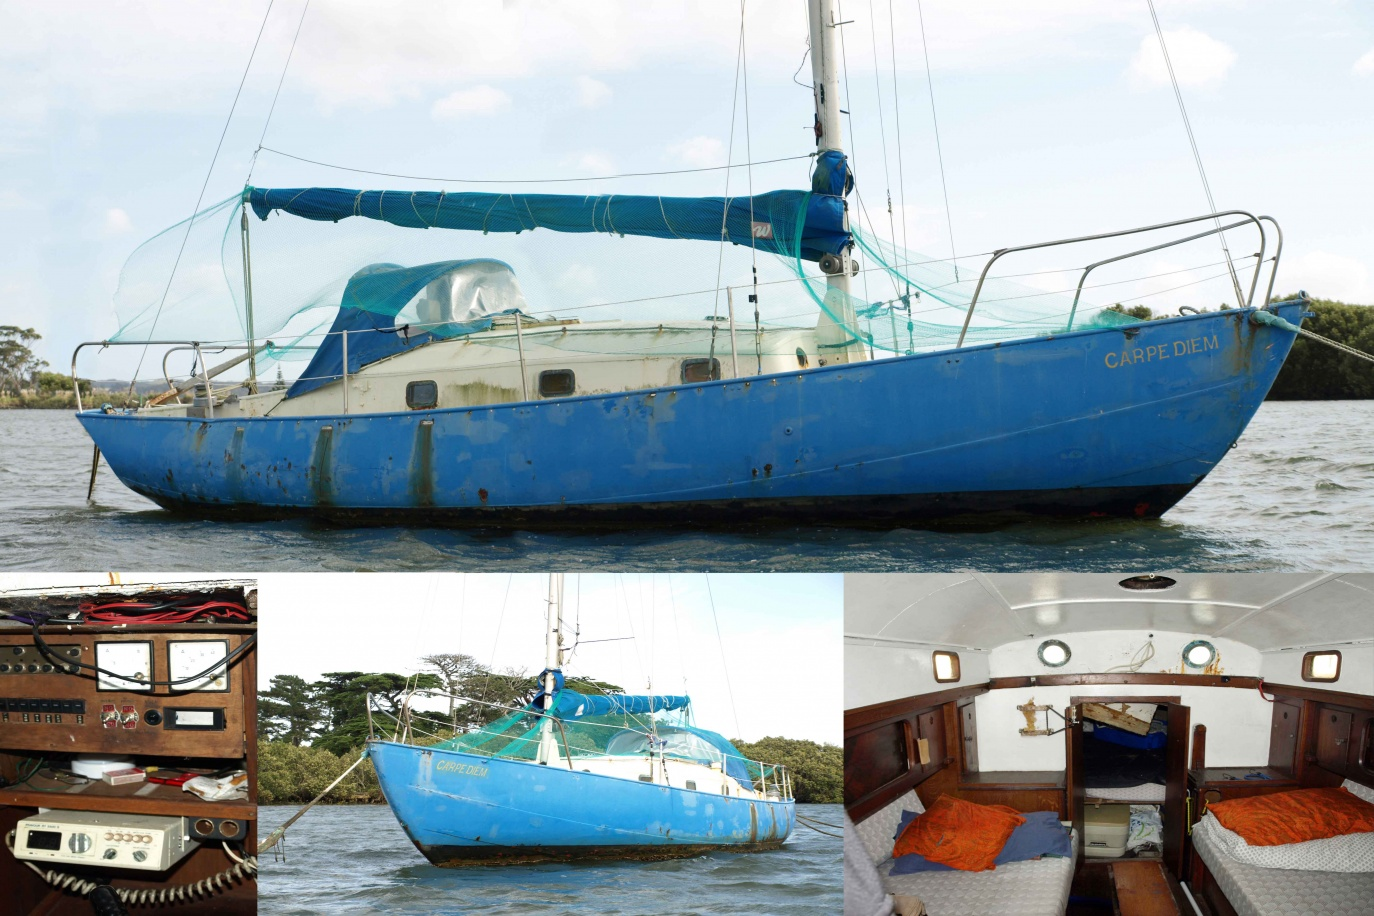 Click image for larger version  Name:Yacht 097dss.jpg Views:176 Size:418.3 KB ID:120845